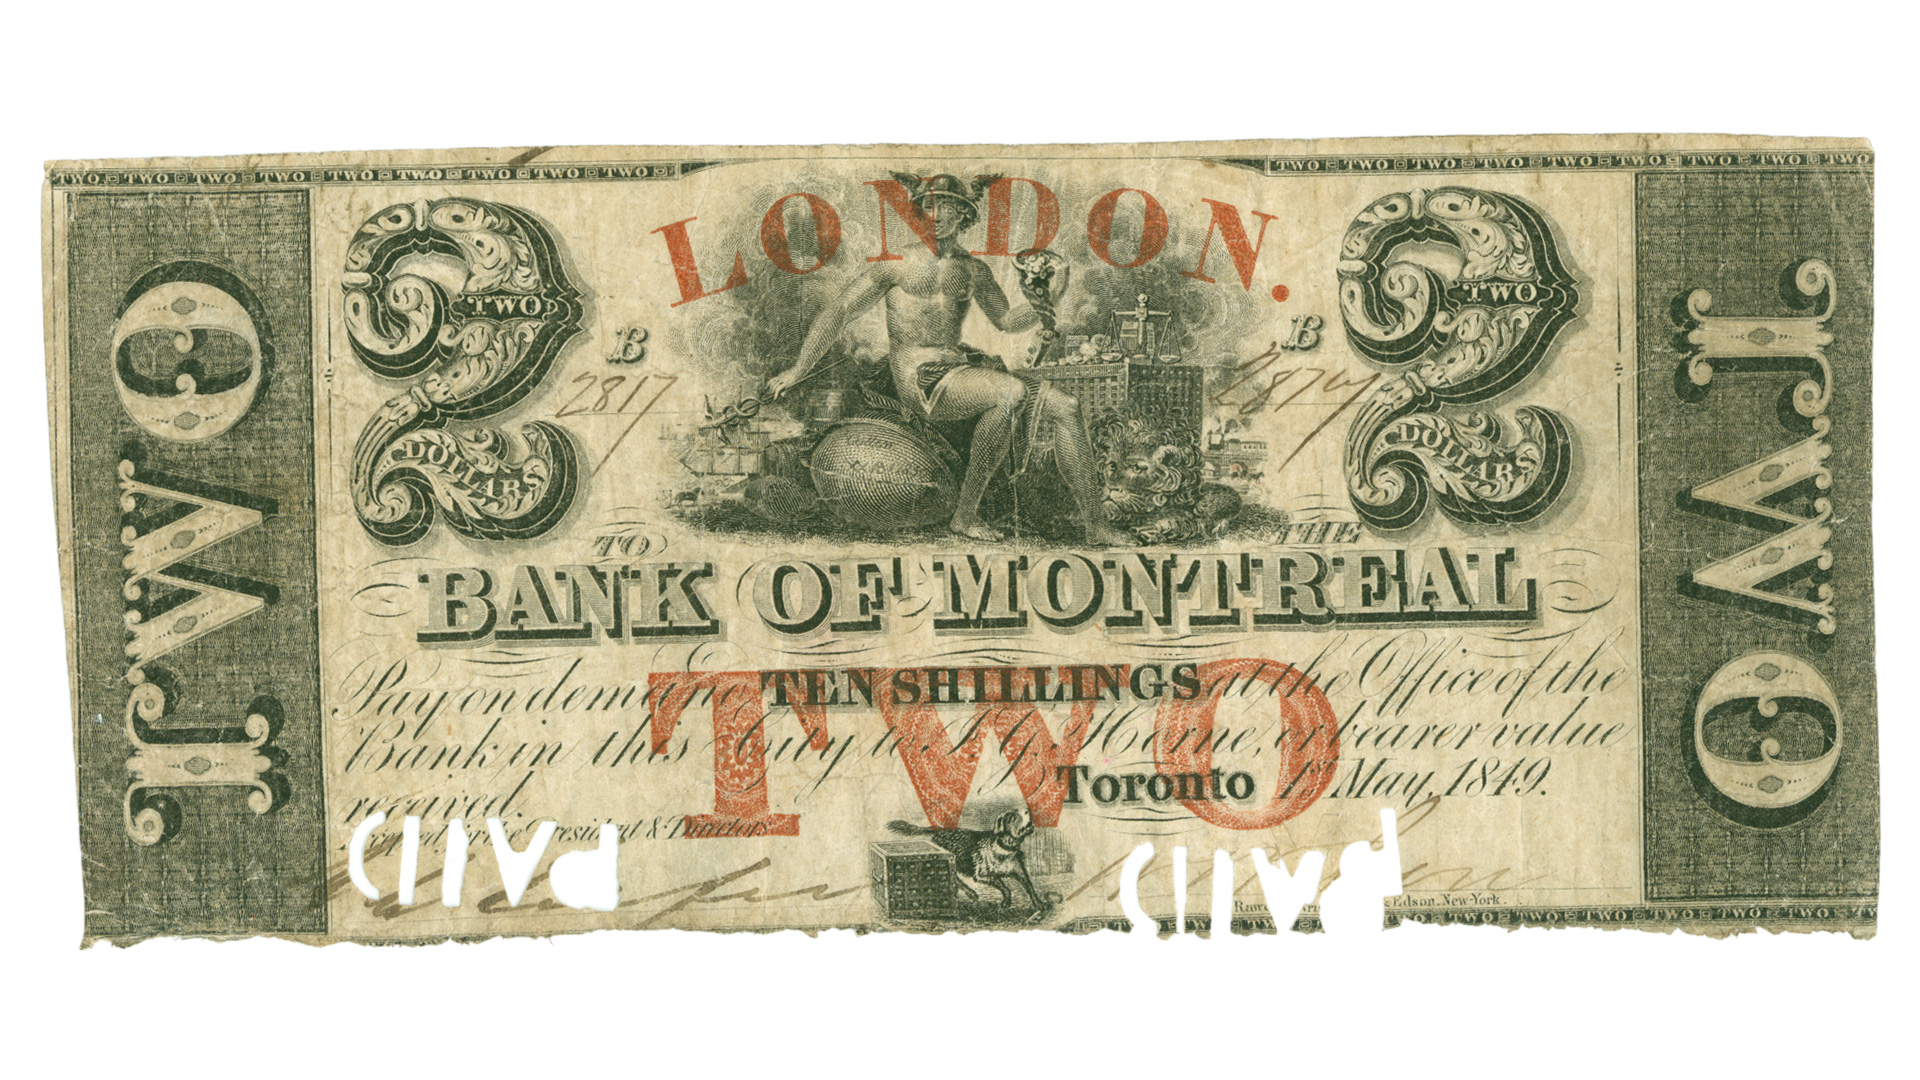 A $2/10 shilling note, issued in 1849.